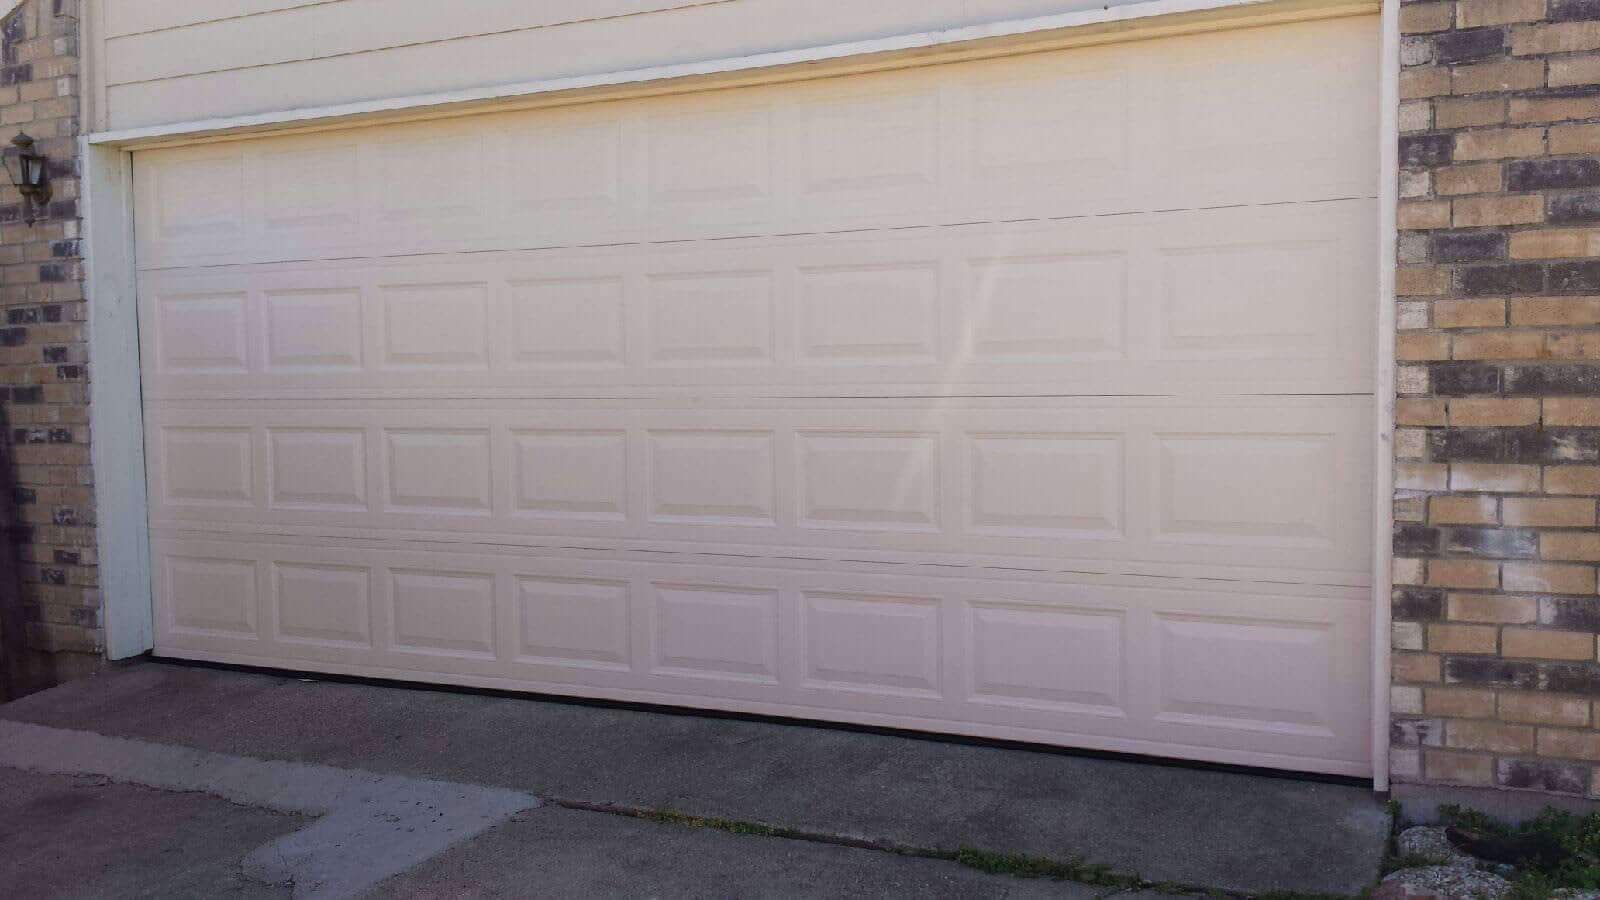 Garage Door Opener Remote Replacement Family Christian Doors Antenna For At 817 224 2227 24 Hours A Day 7 Days Week Assistance And Free On Site Assessment We Would Be Happy To Assist You With All Your